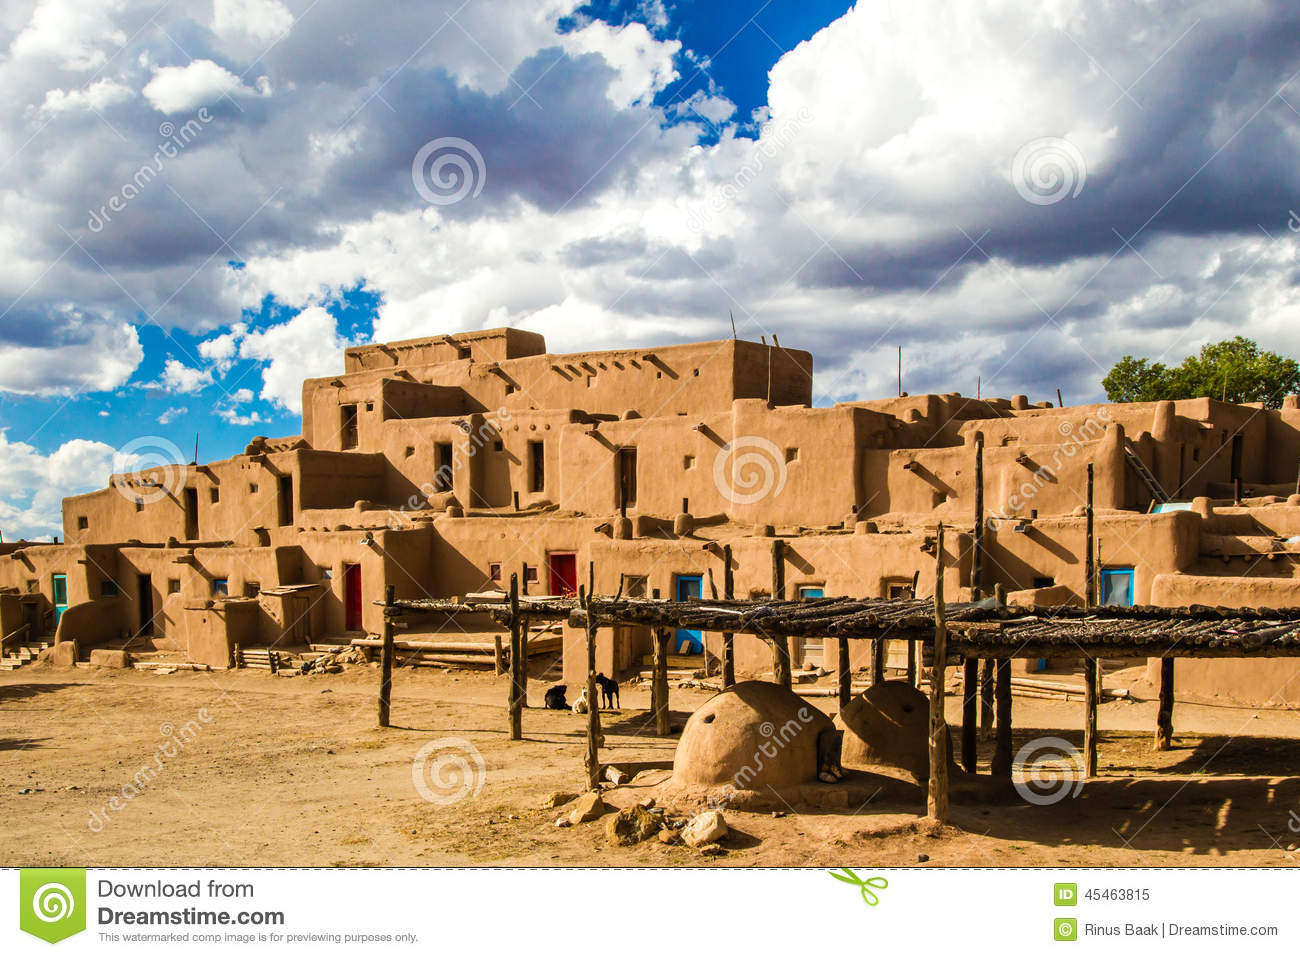 taos personals Navigate the cultural landscape of taos, taos ski valley, taos pueblo, red river, angel fire, and northern new mexico including maps, business information, events, special offers.